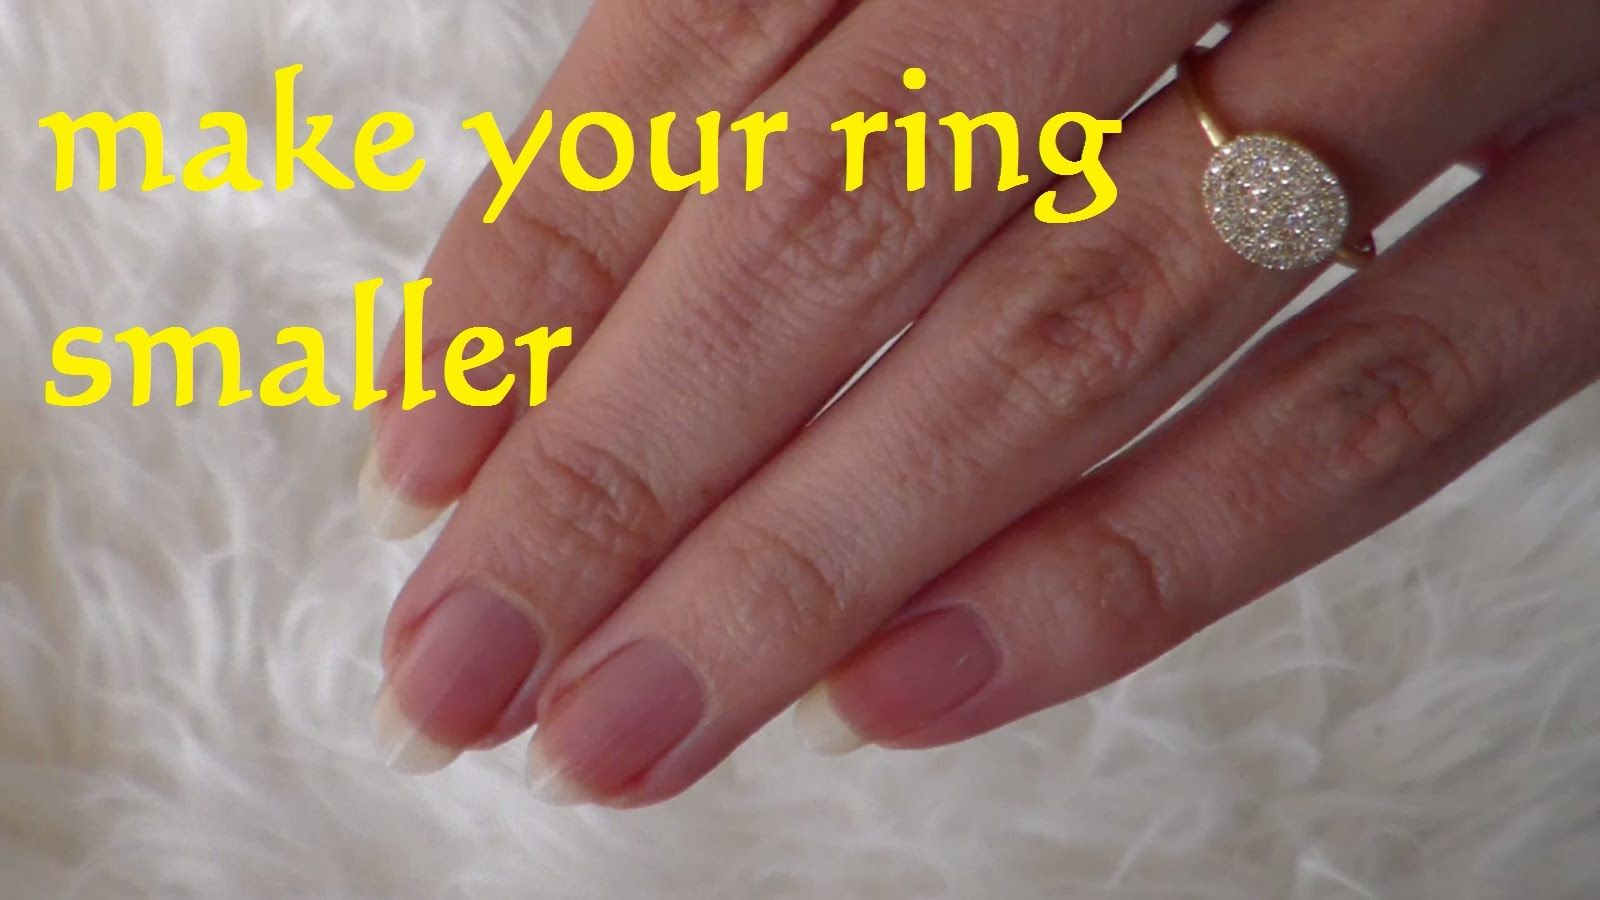 Diy Resize Ring Smaller How To Make A Ring Smaller Lifehack Resize A Make A Ring Smaller How To Make Rings Small Wedding Rings